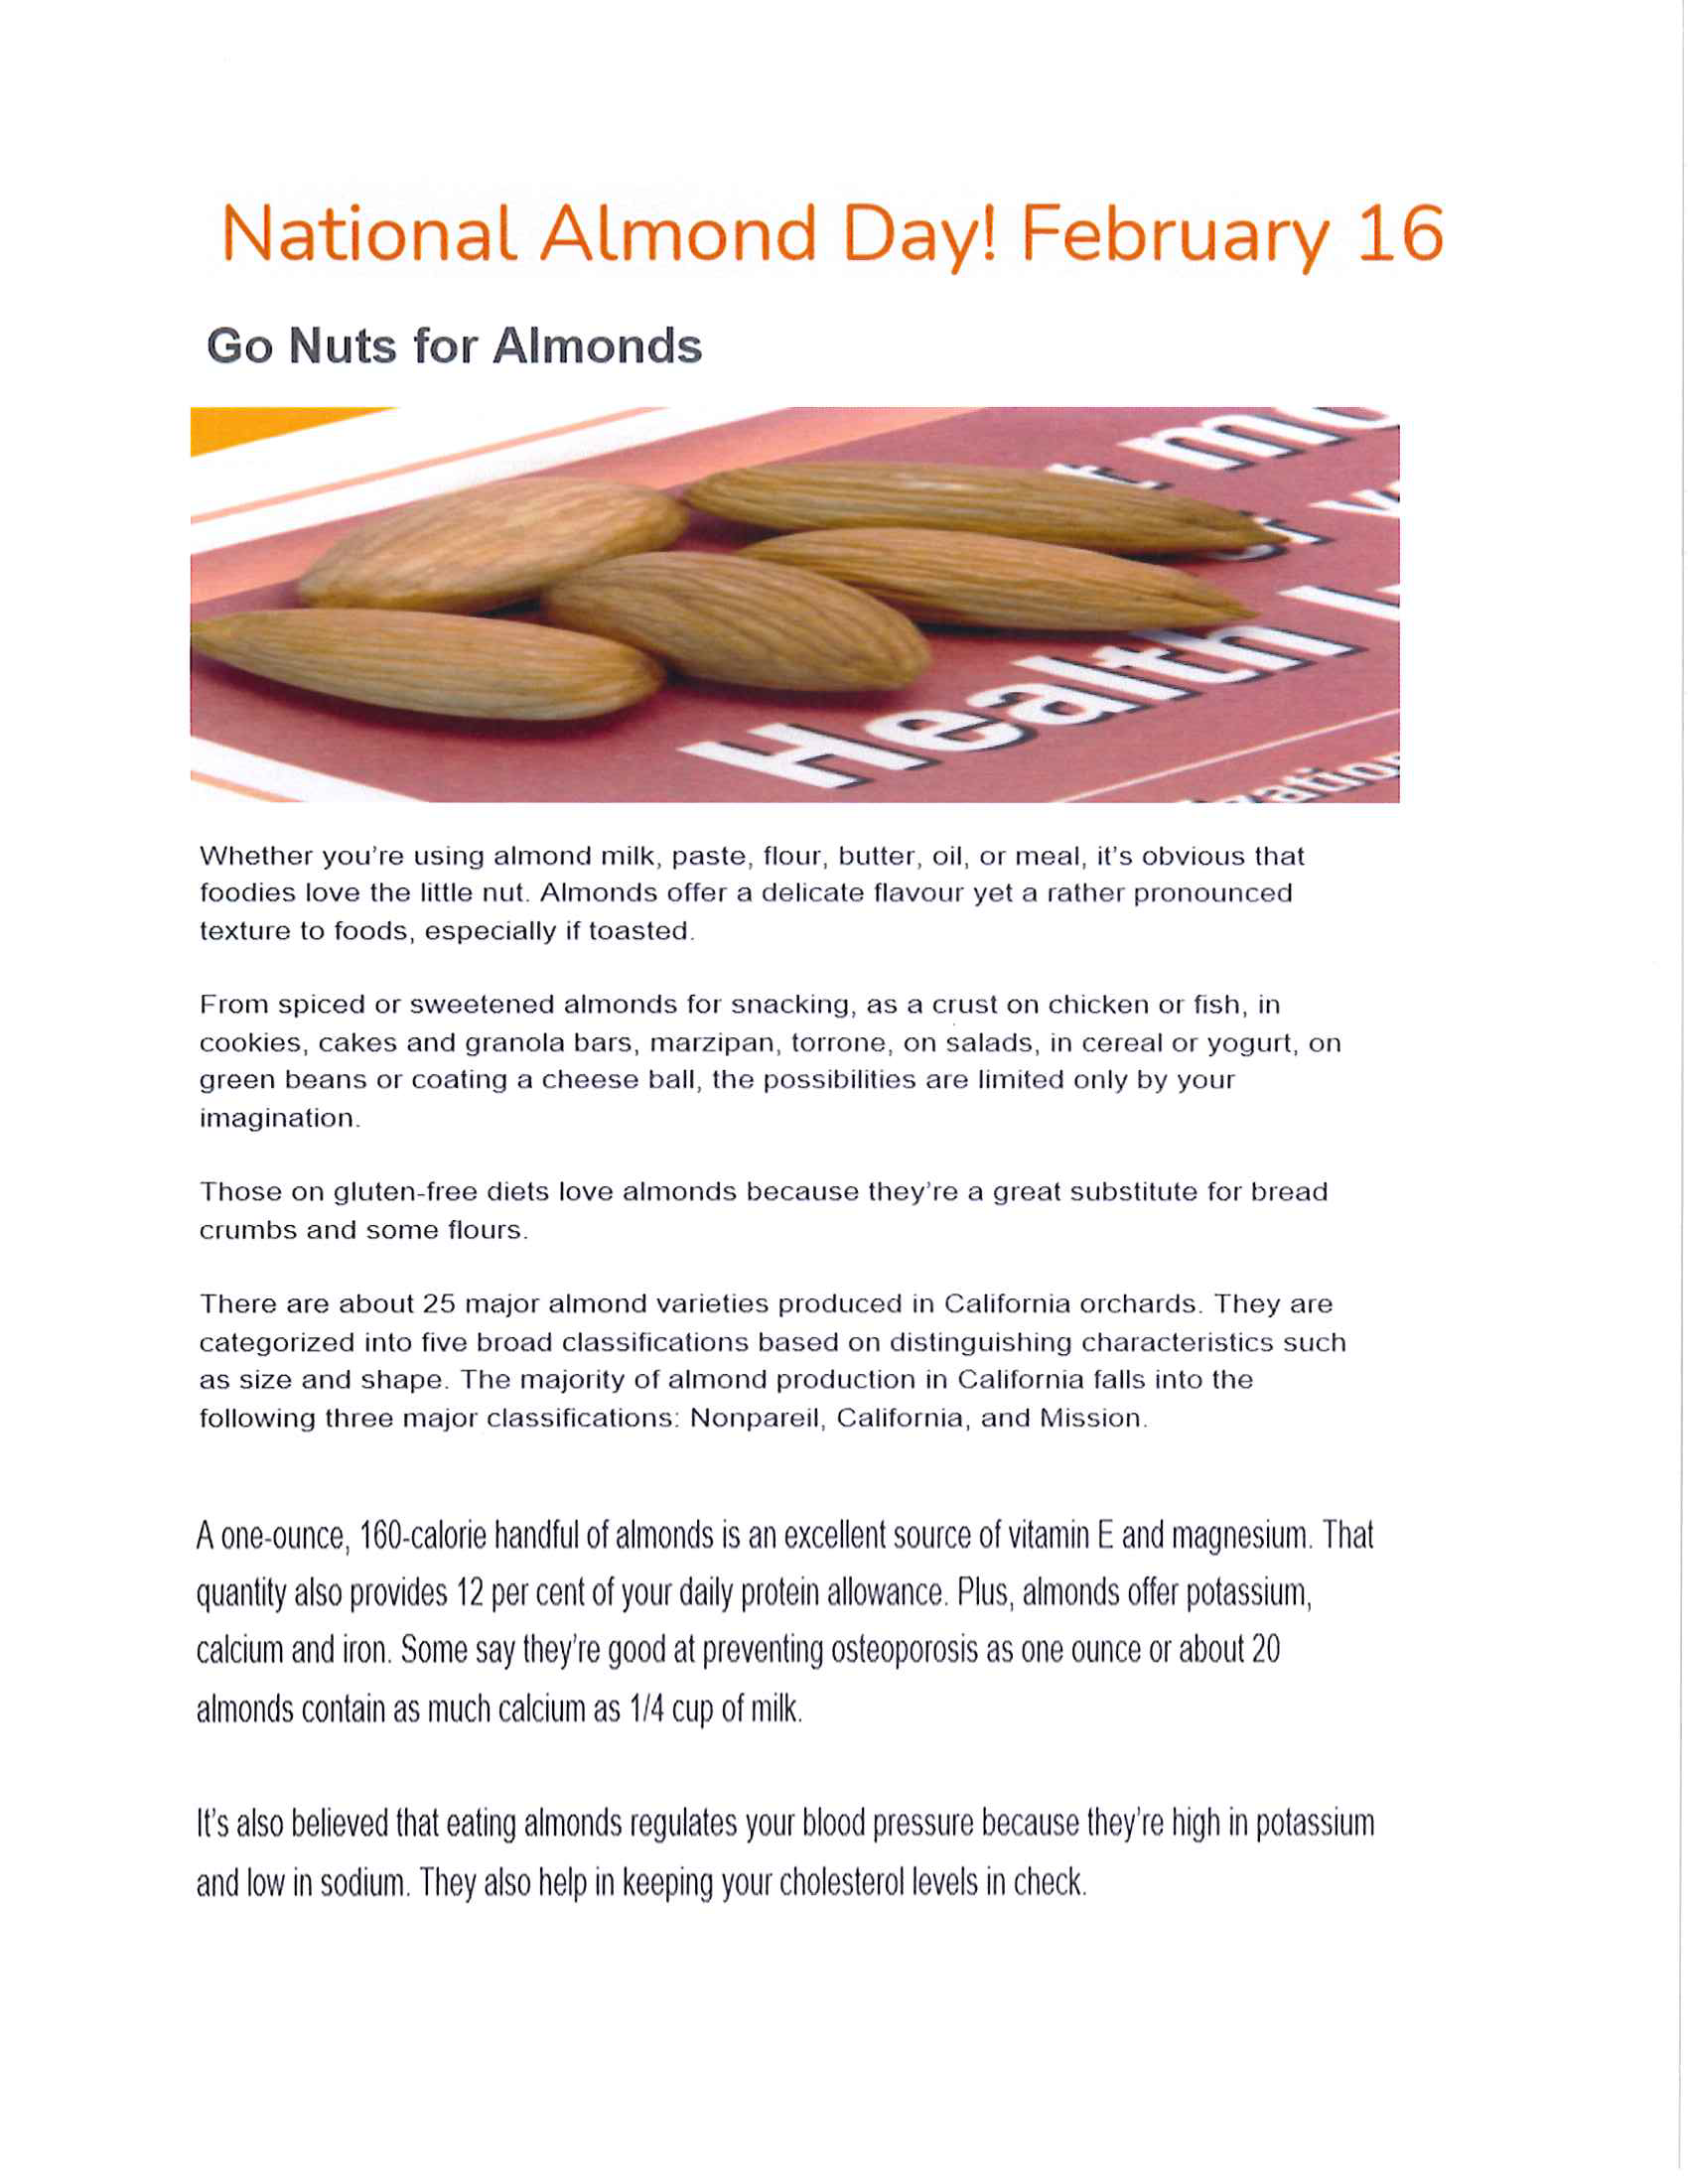 February-National Almond Day.pdf